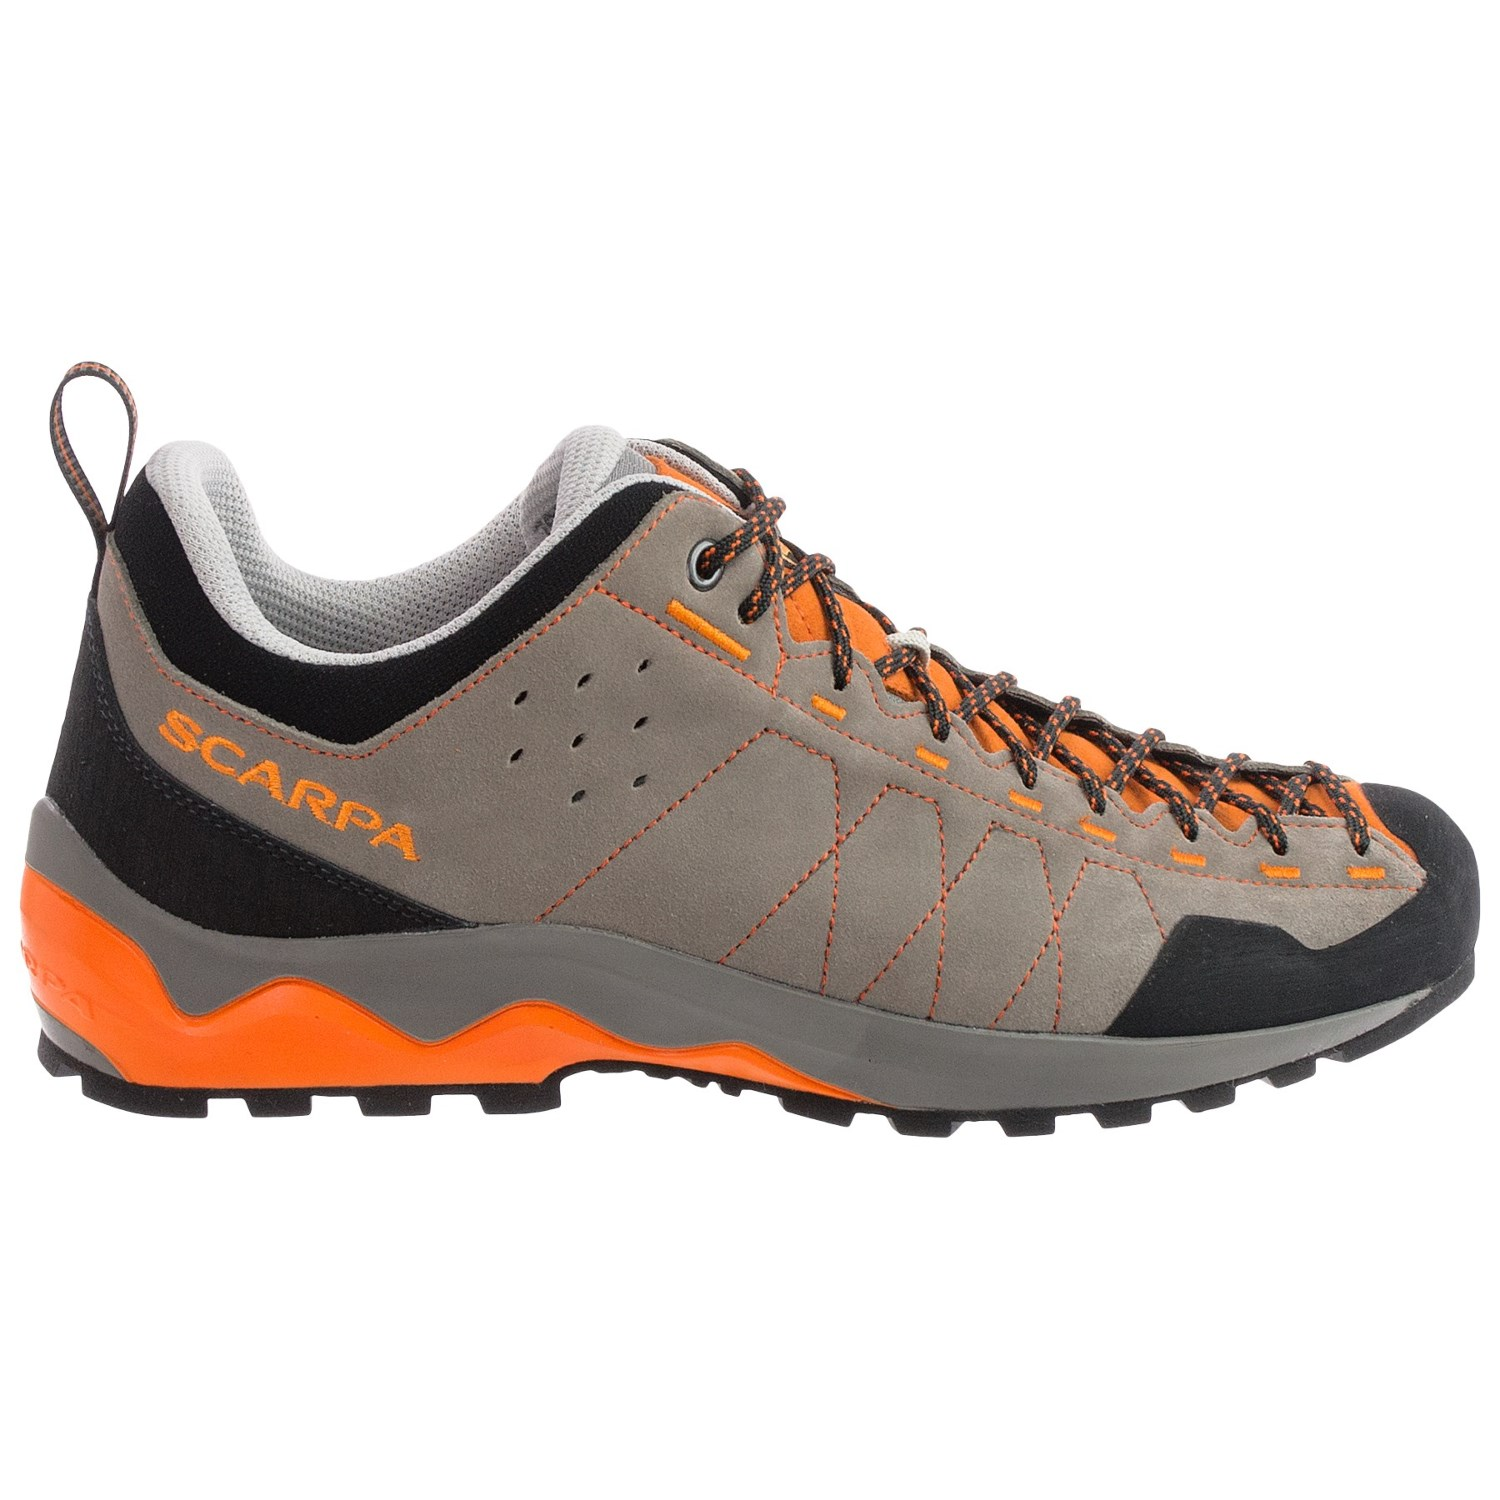 Scarpa Men S Approach Shoes